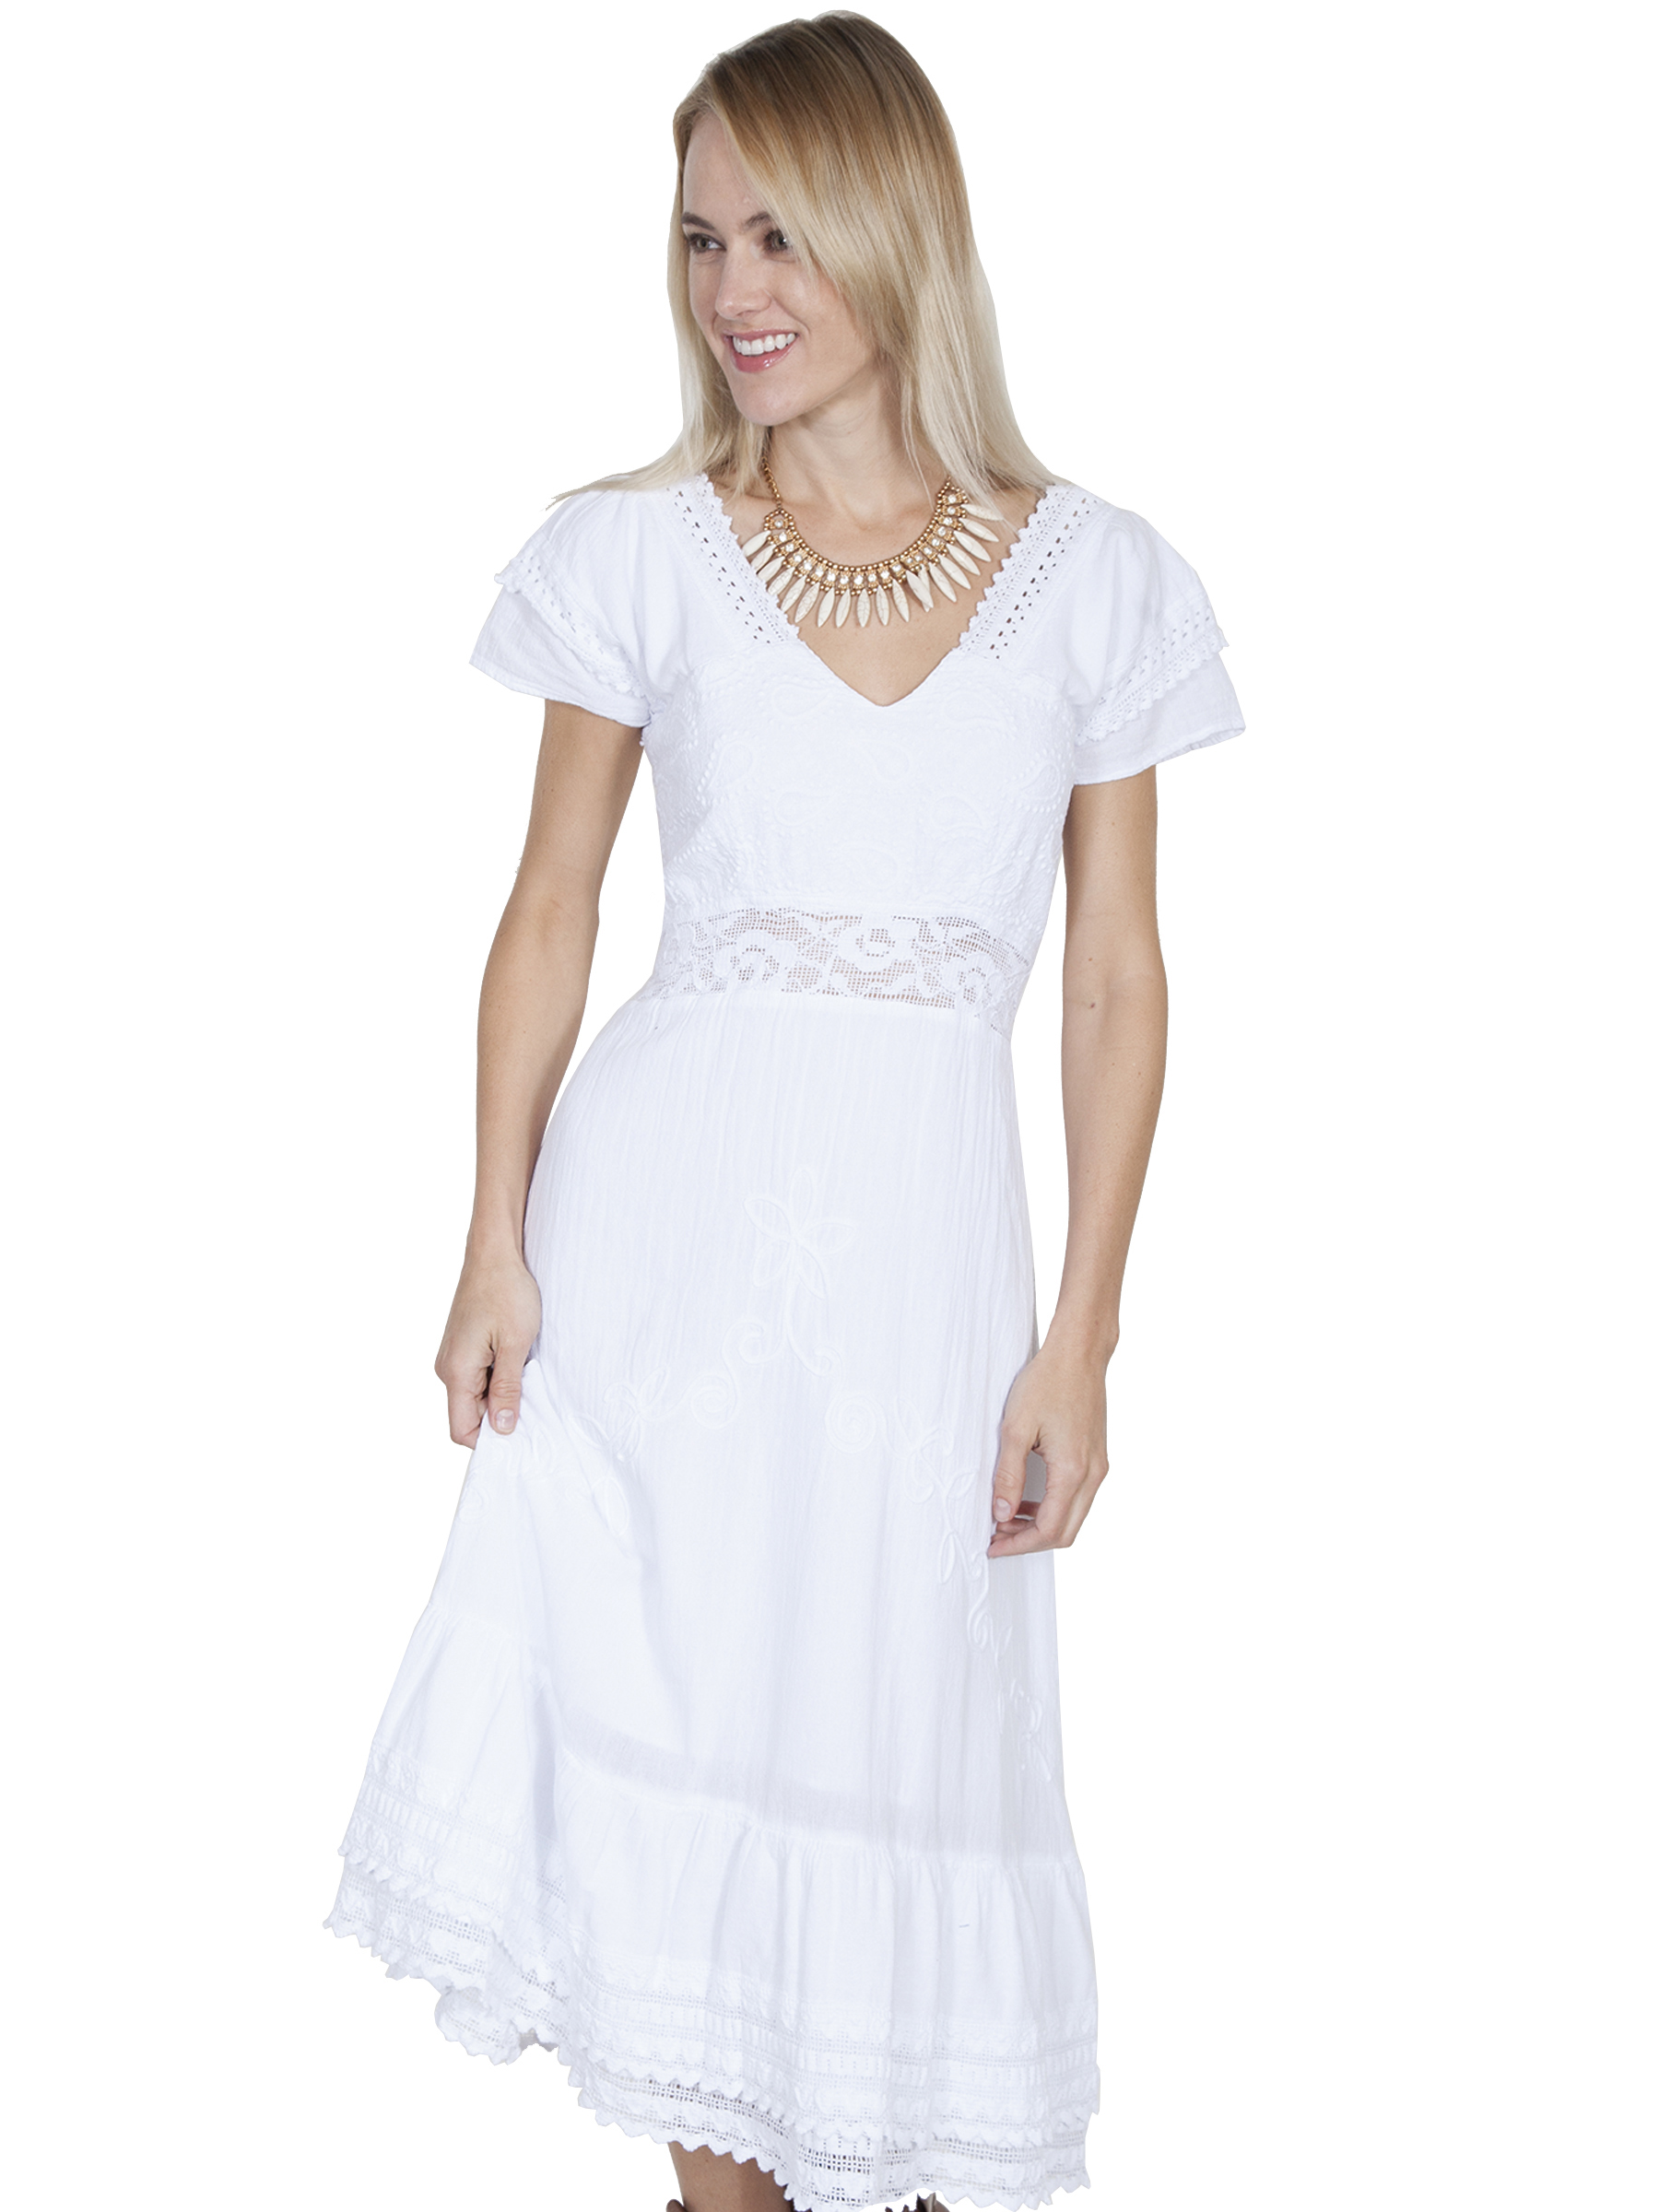 100% peruvian cotton maxi dress with double cap sleeves